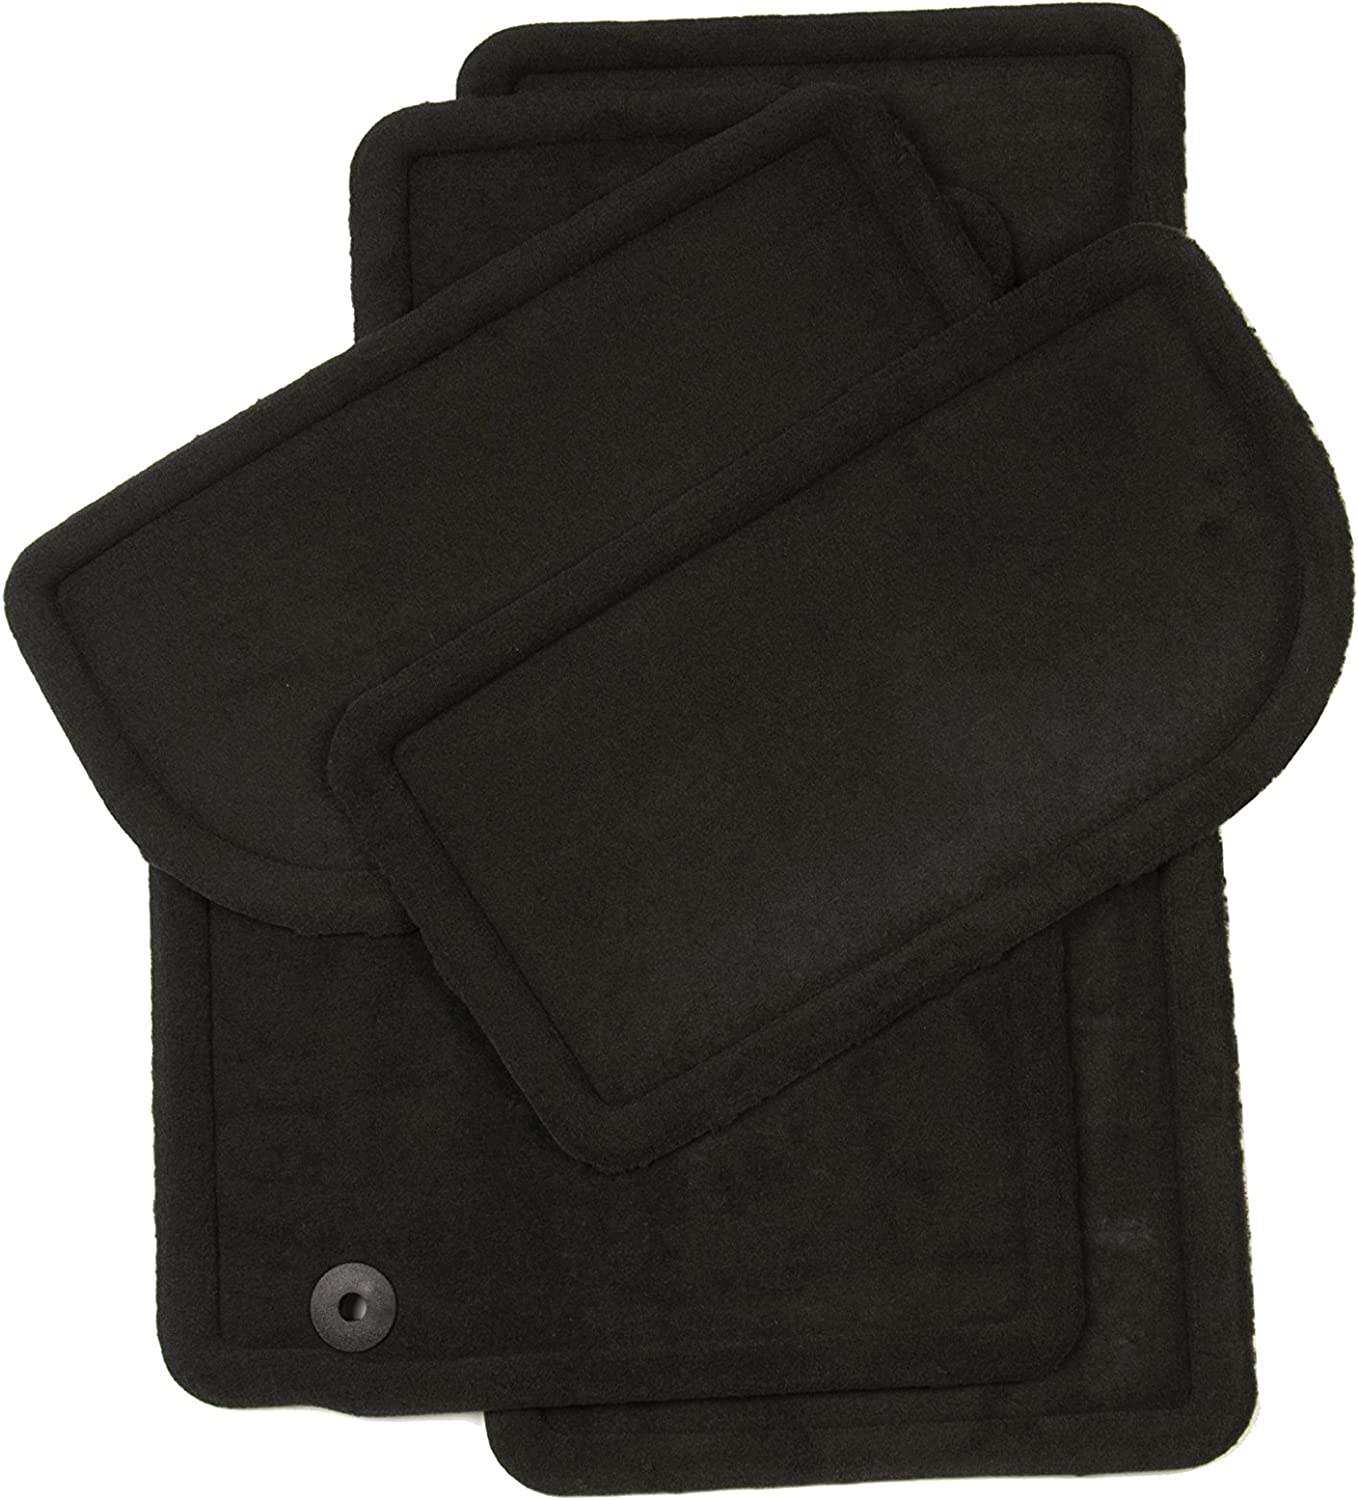 GM Accessories 22865844 Front and Rear Carpeted Floor Mats in Ebony